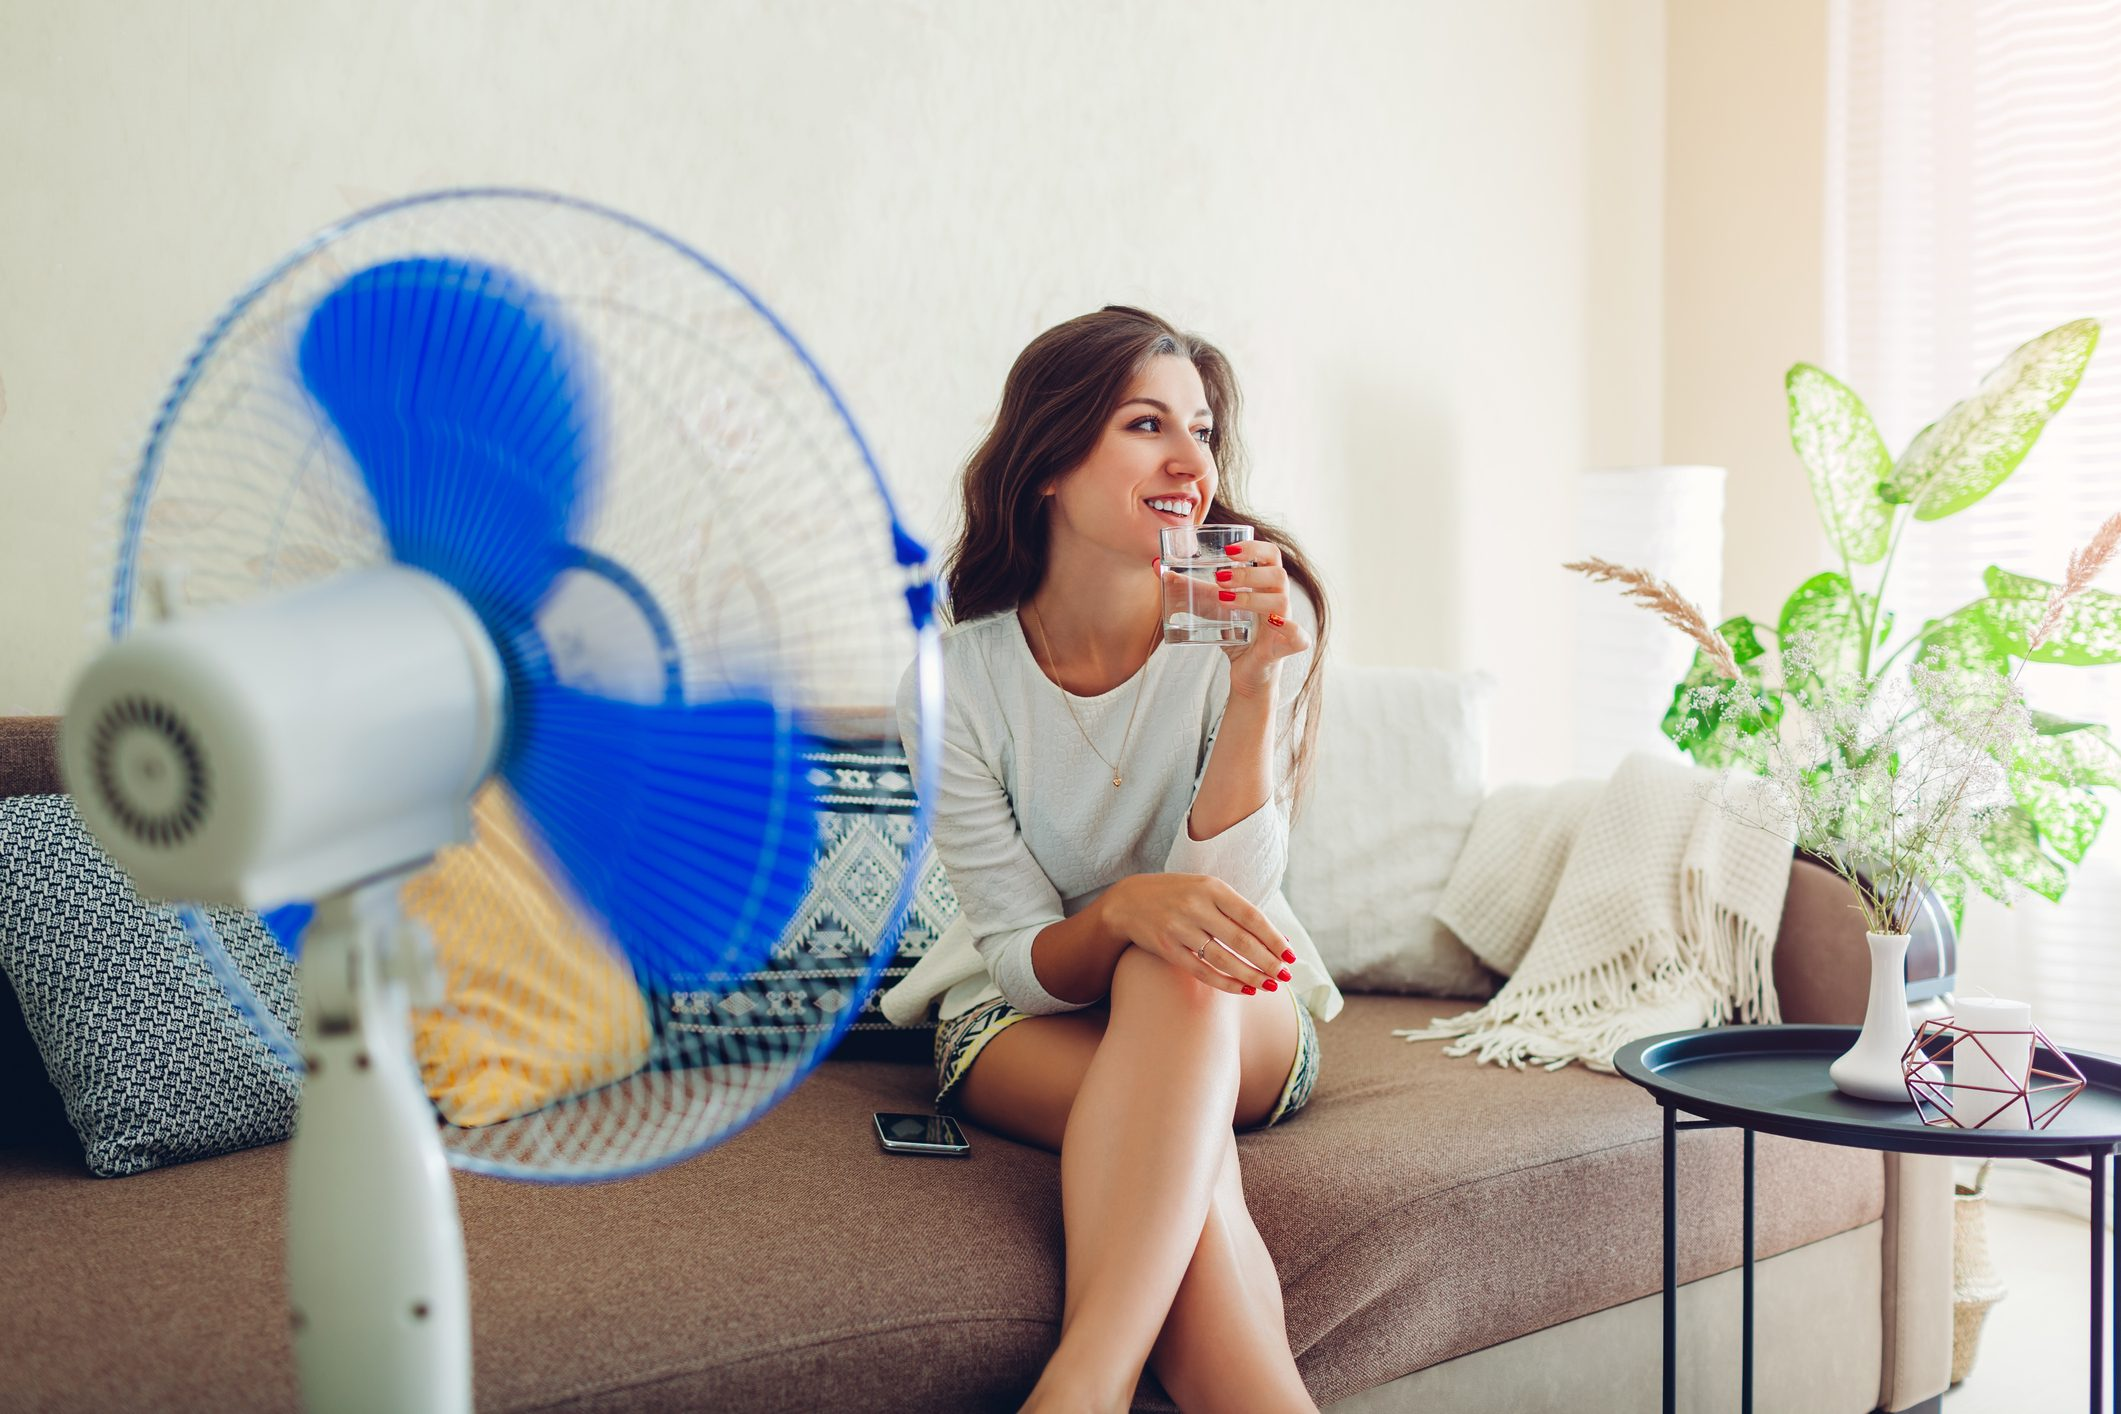 woman sitting on couch in front of fan and drinking a glass of water